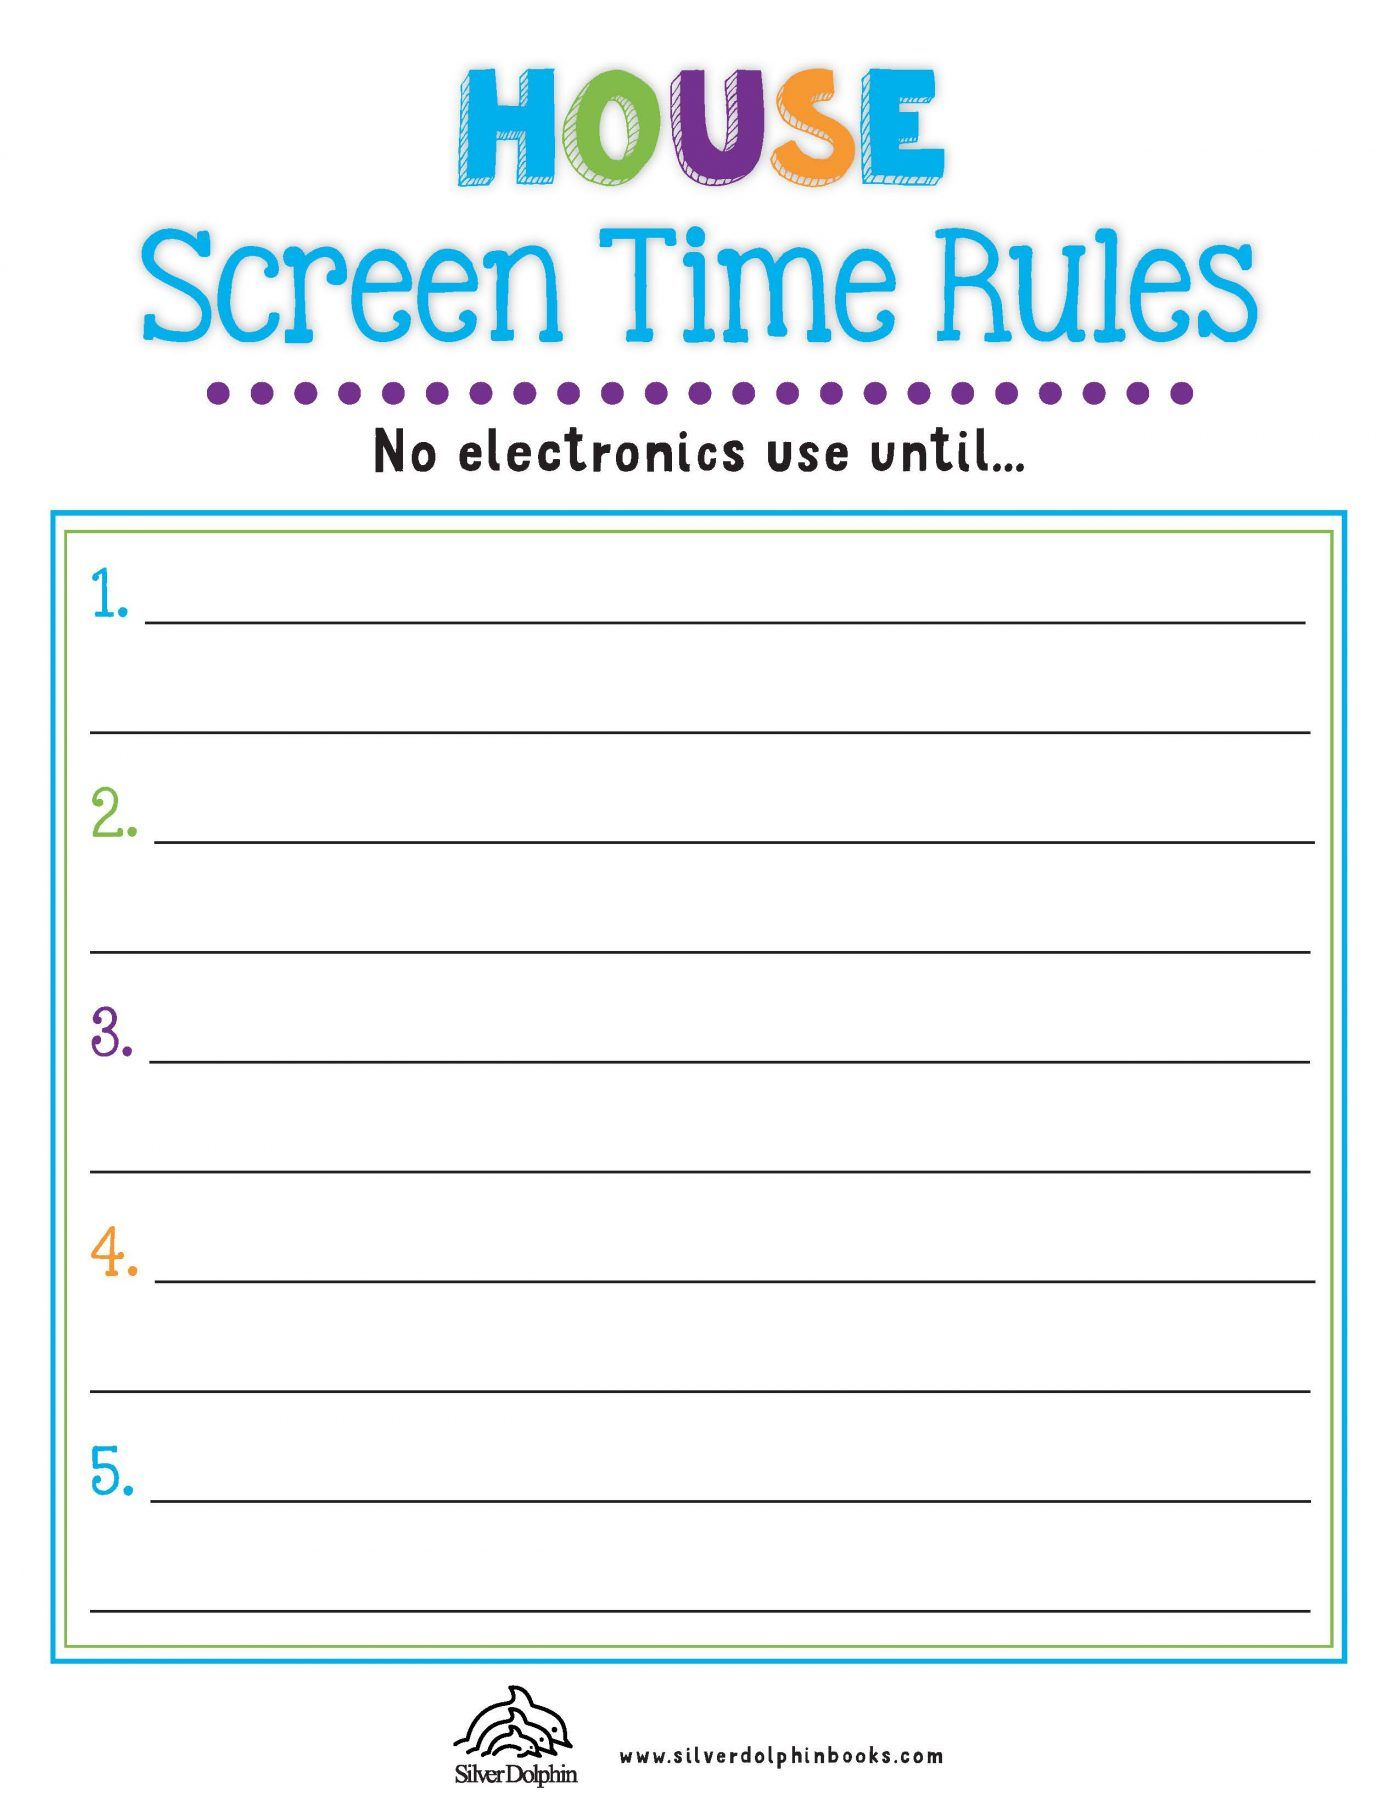 Summer Screen Time Rules Checklists With Images